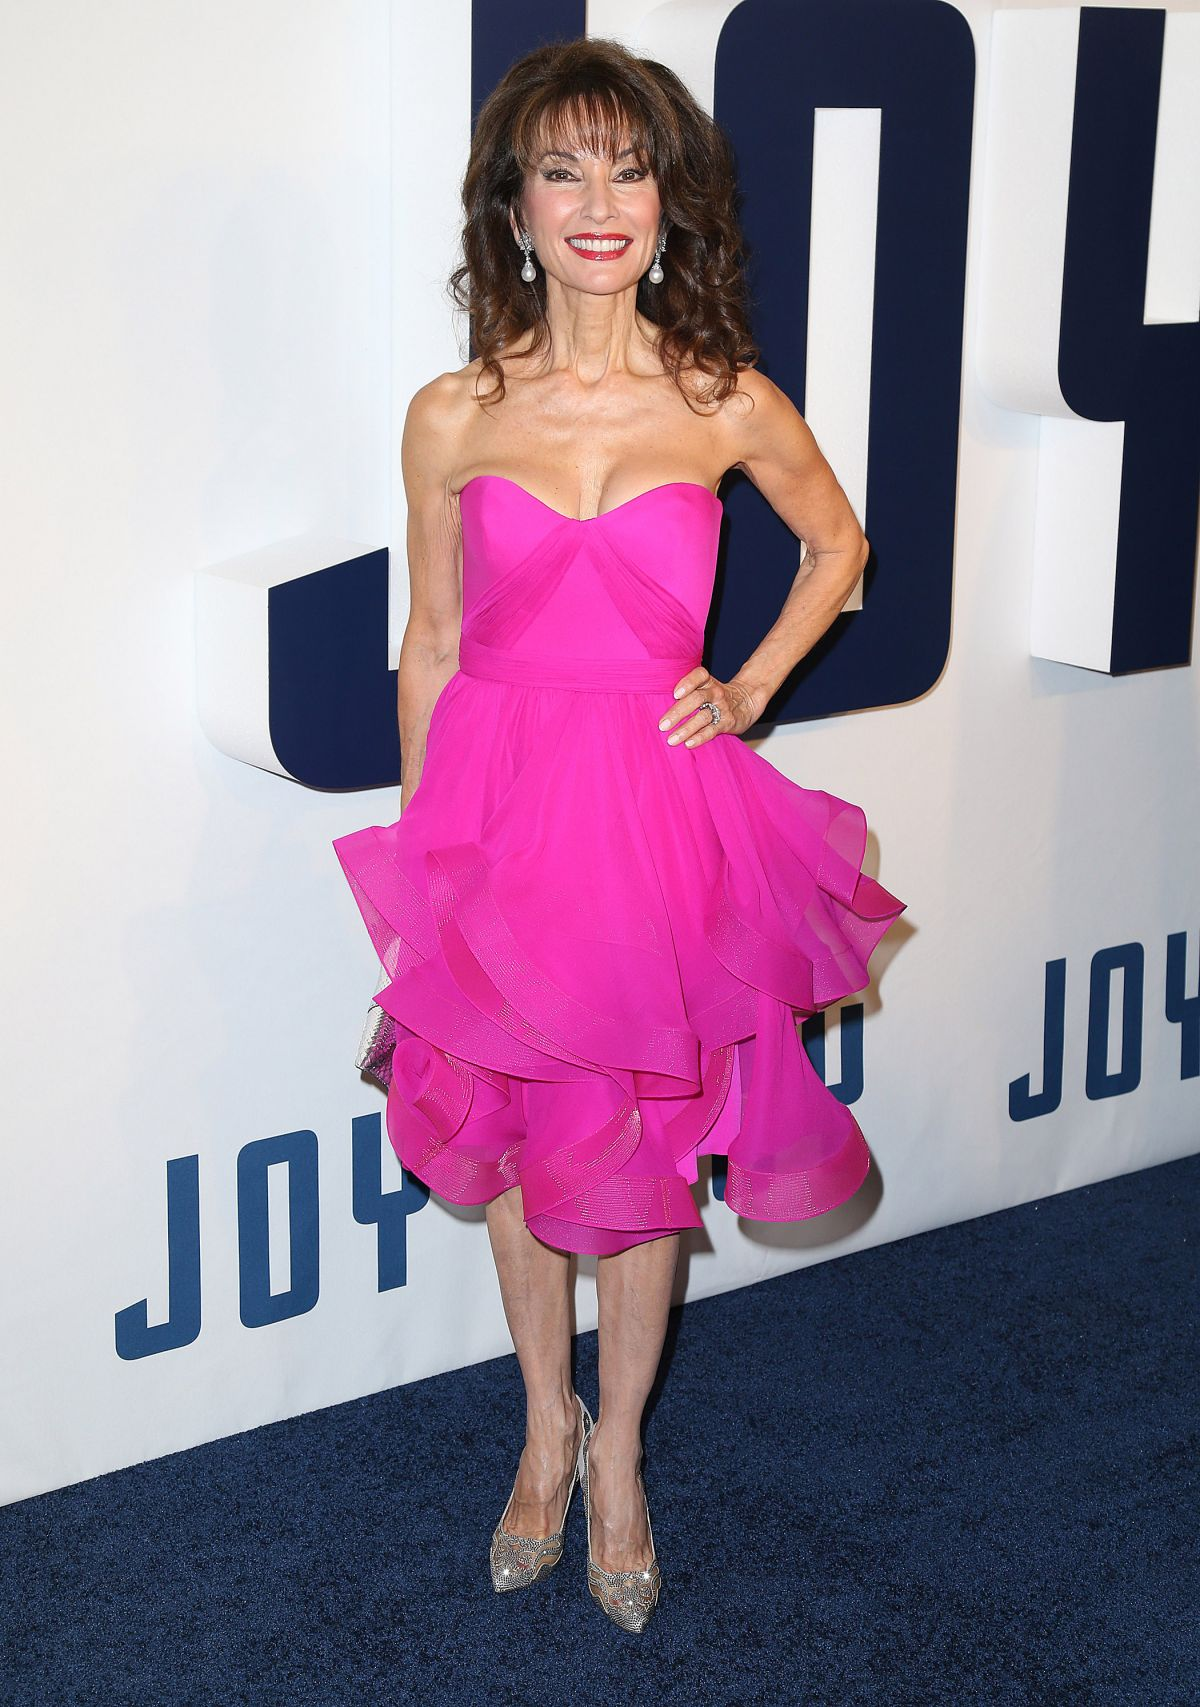 SUSAN LUCCI at Joy Premiere in New York 12/13/2015